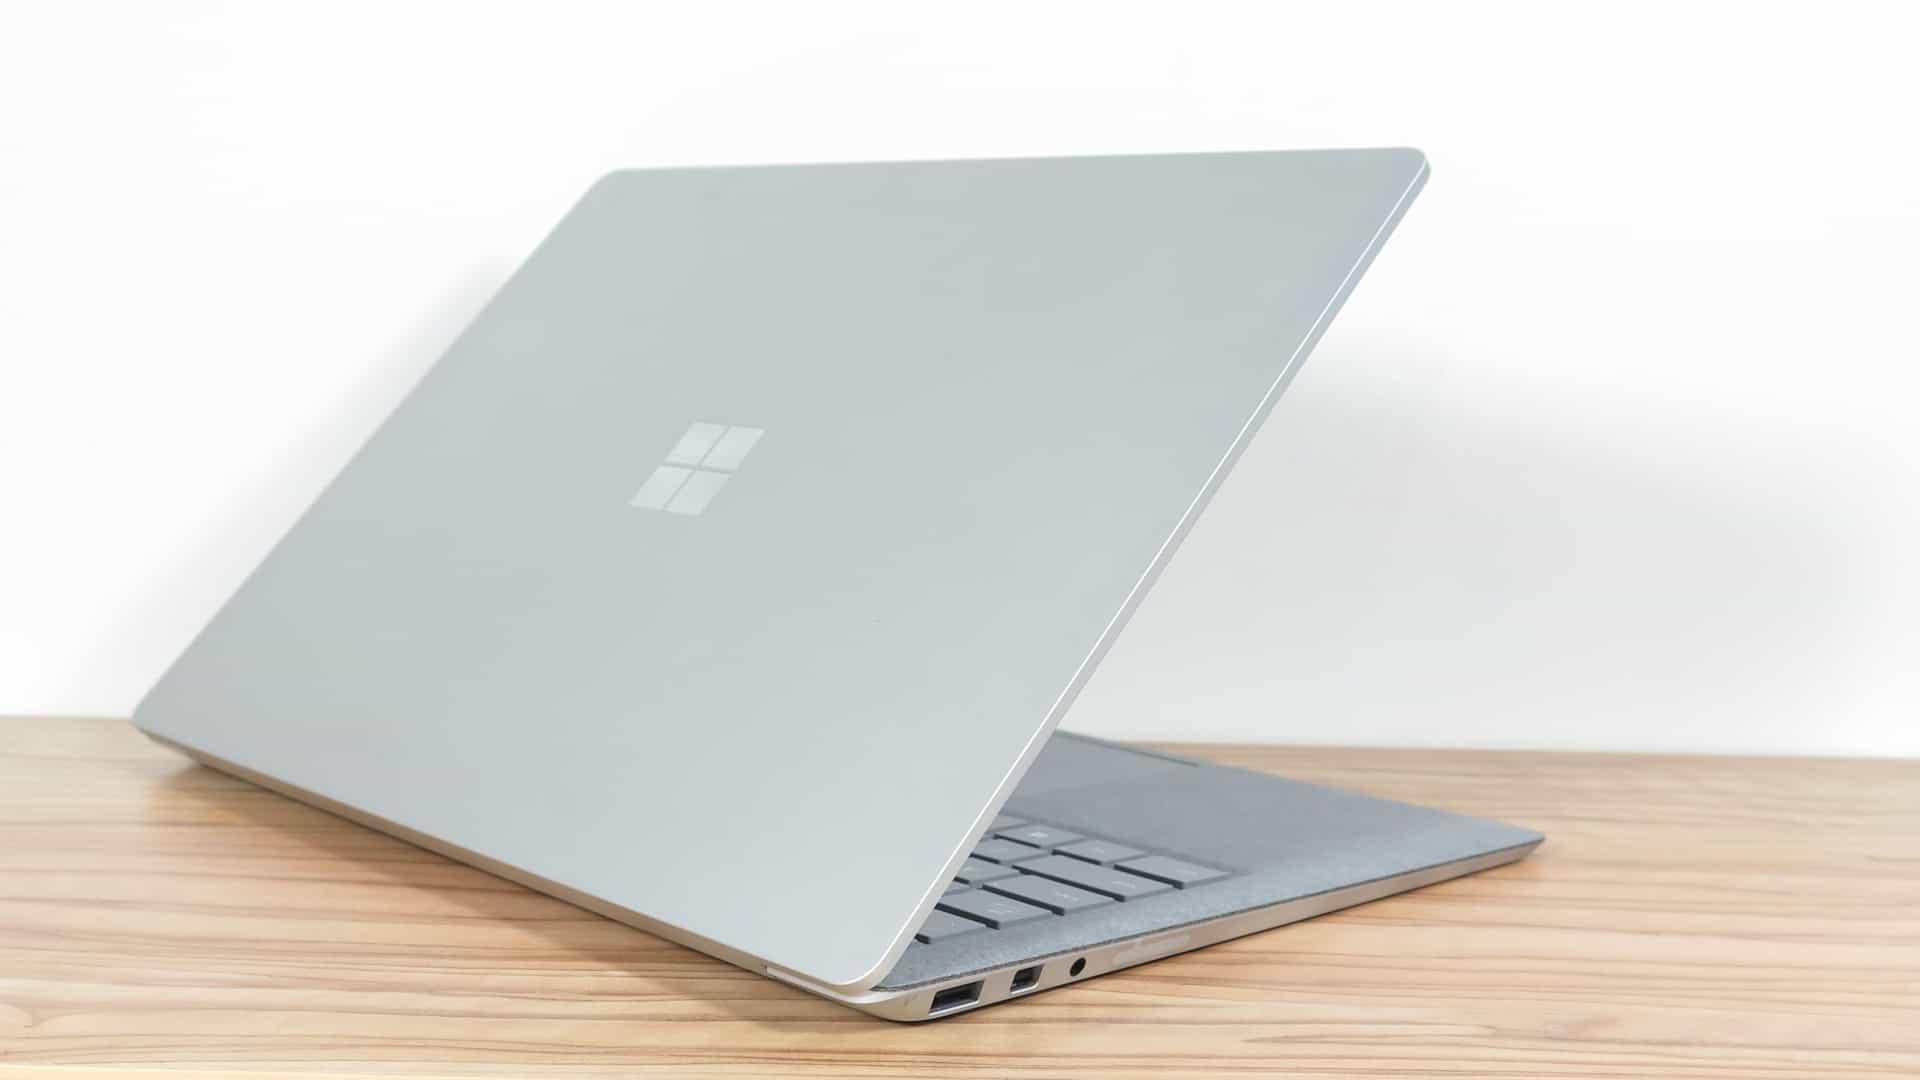 Microsoft Surface Laptop 2 6